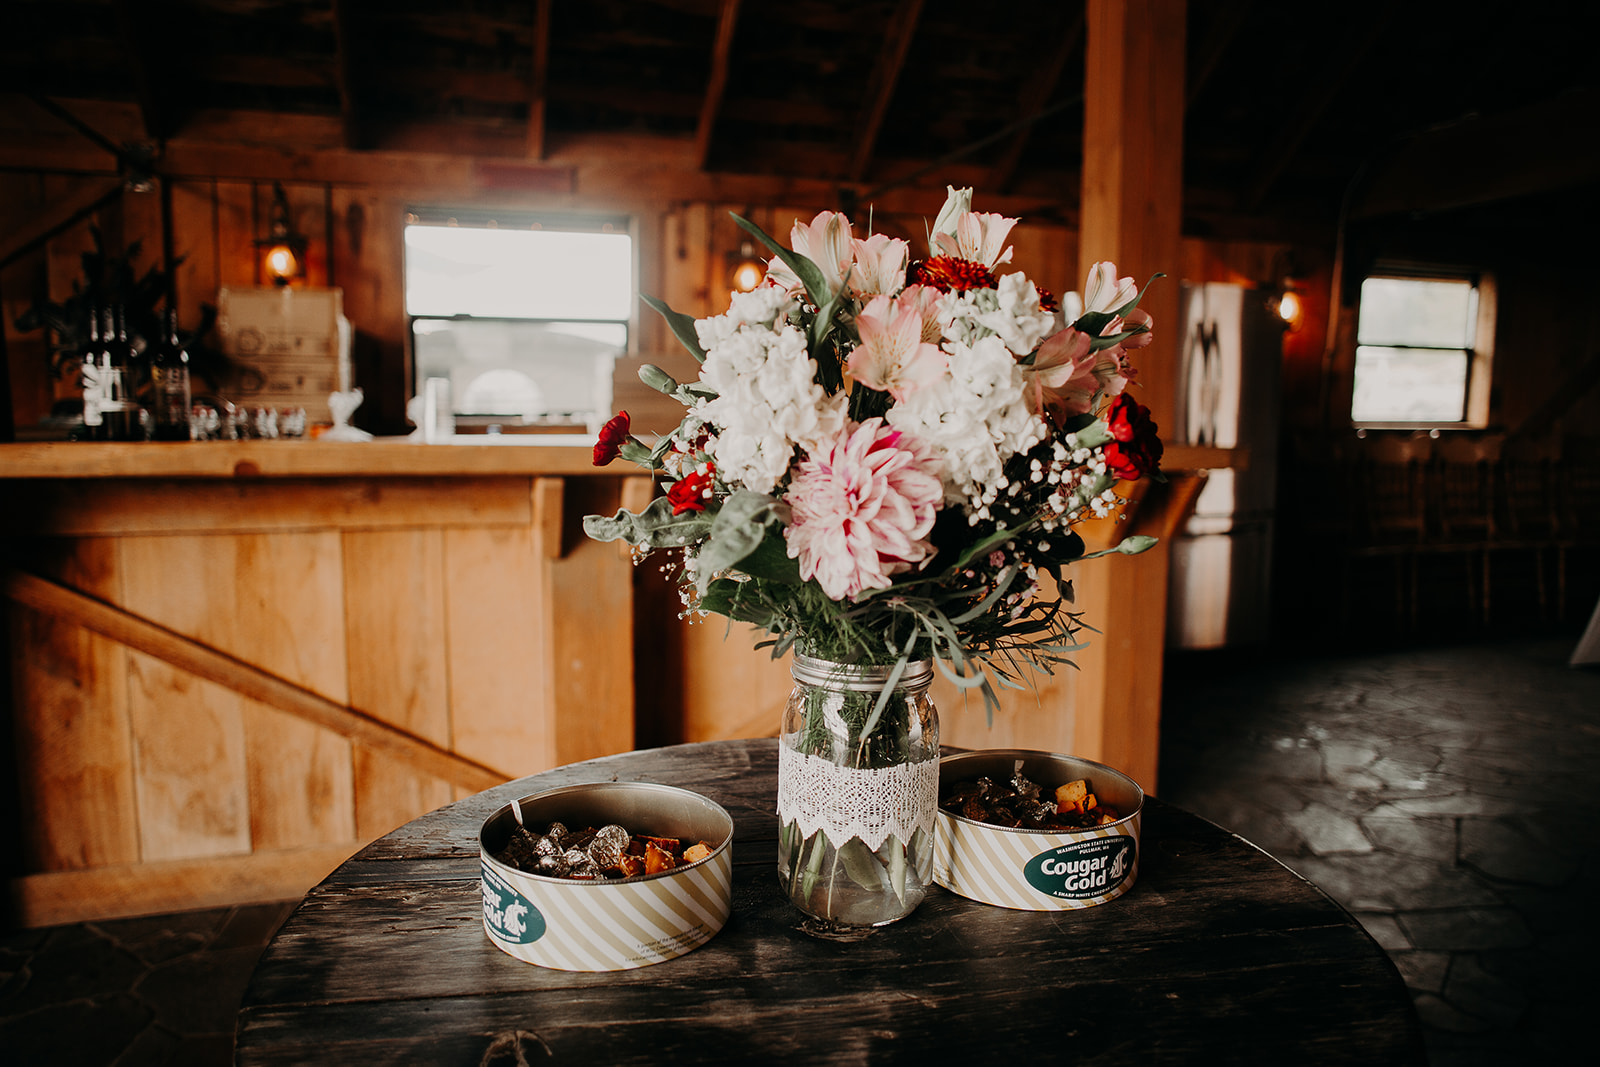 cattle-barn-wedding-cle-elum-wedding-megan-gallagher-photography-winston-salem-photographer (50).jpg